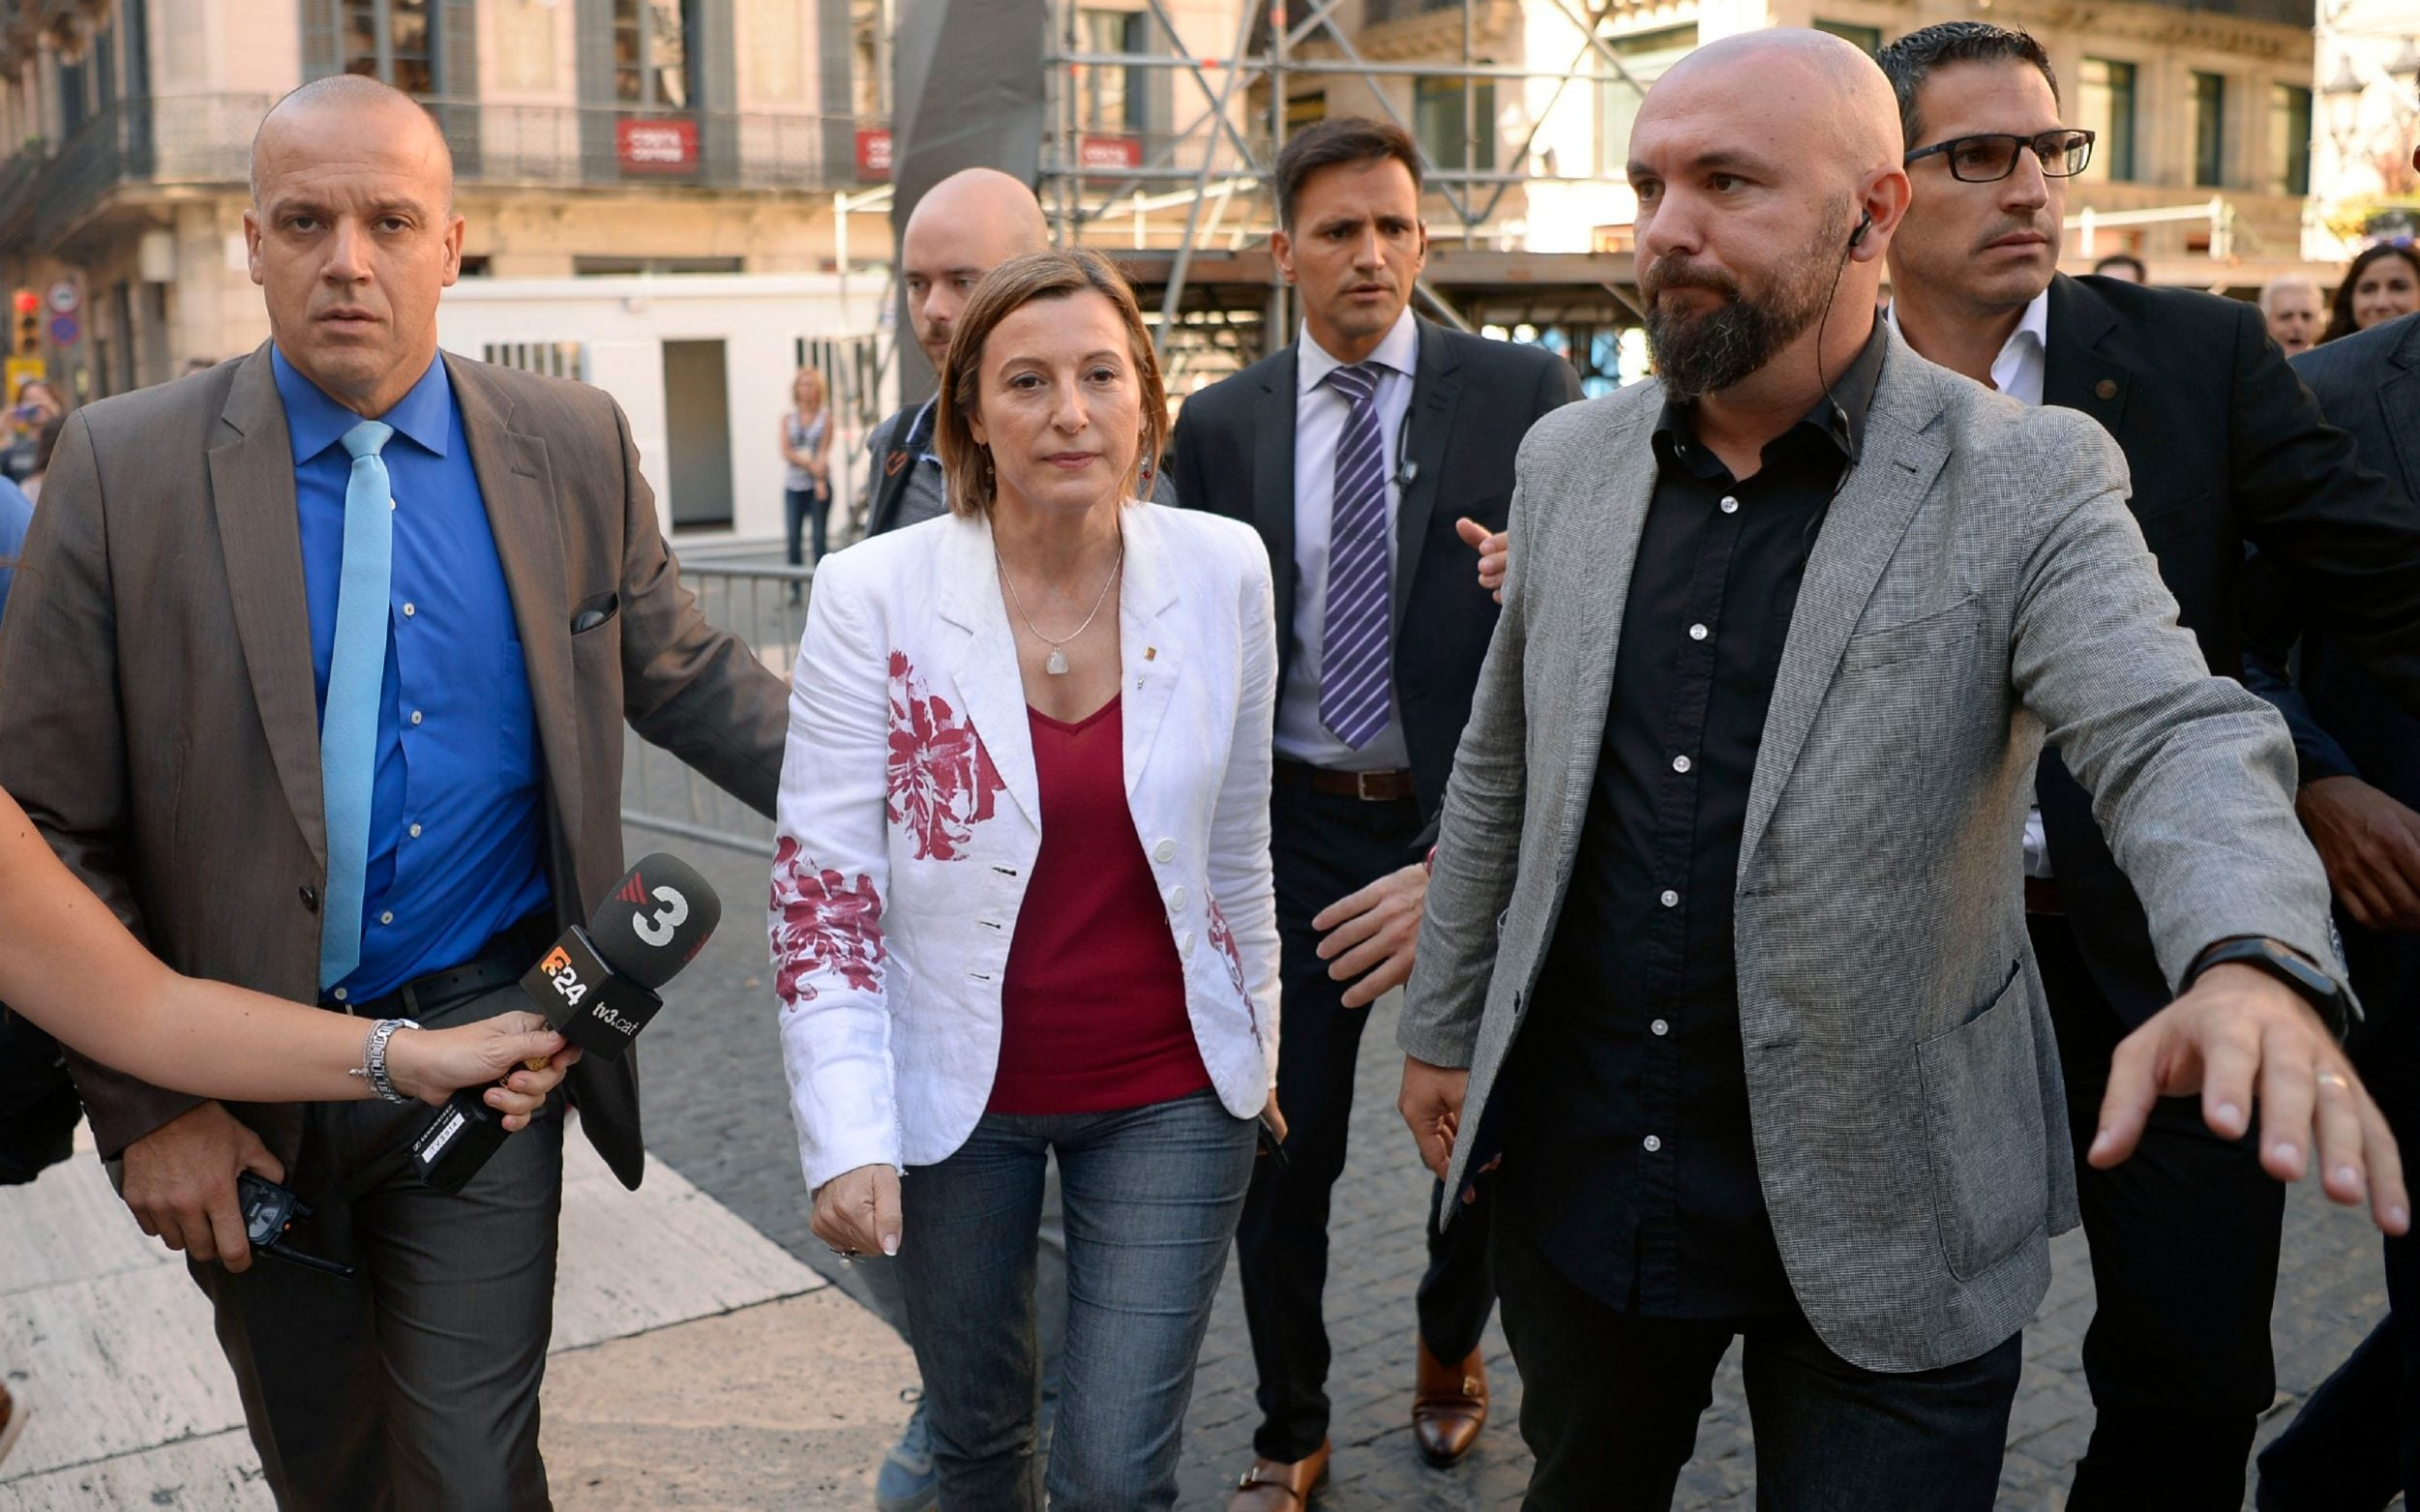 The President of the Catalan parliament Carme Forcadell (C) leaves the headquarters of the Catalan regional government